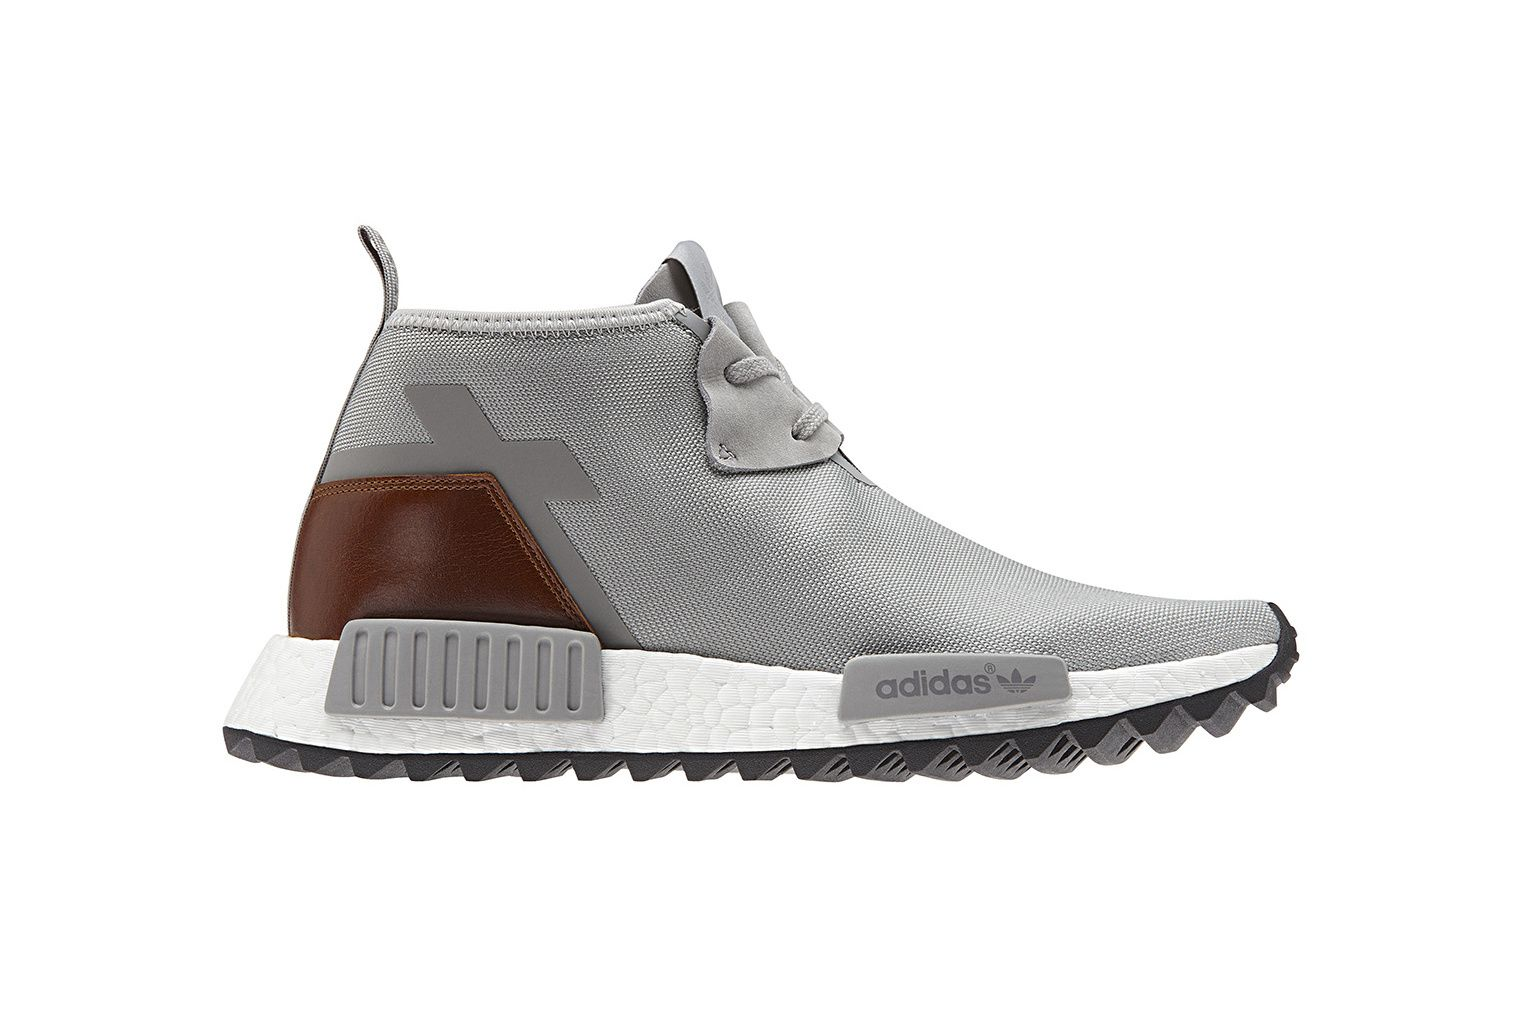 adidas Originals NMD C1 Trail Mid Trainer Grey Uk 10 NMD_C1 Trail